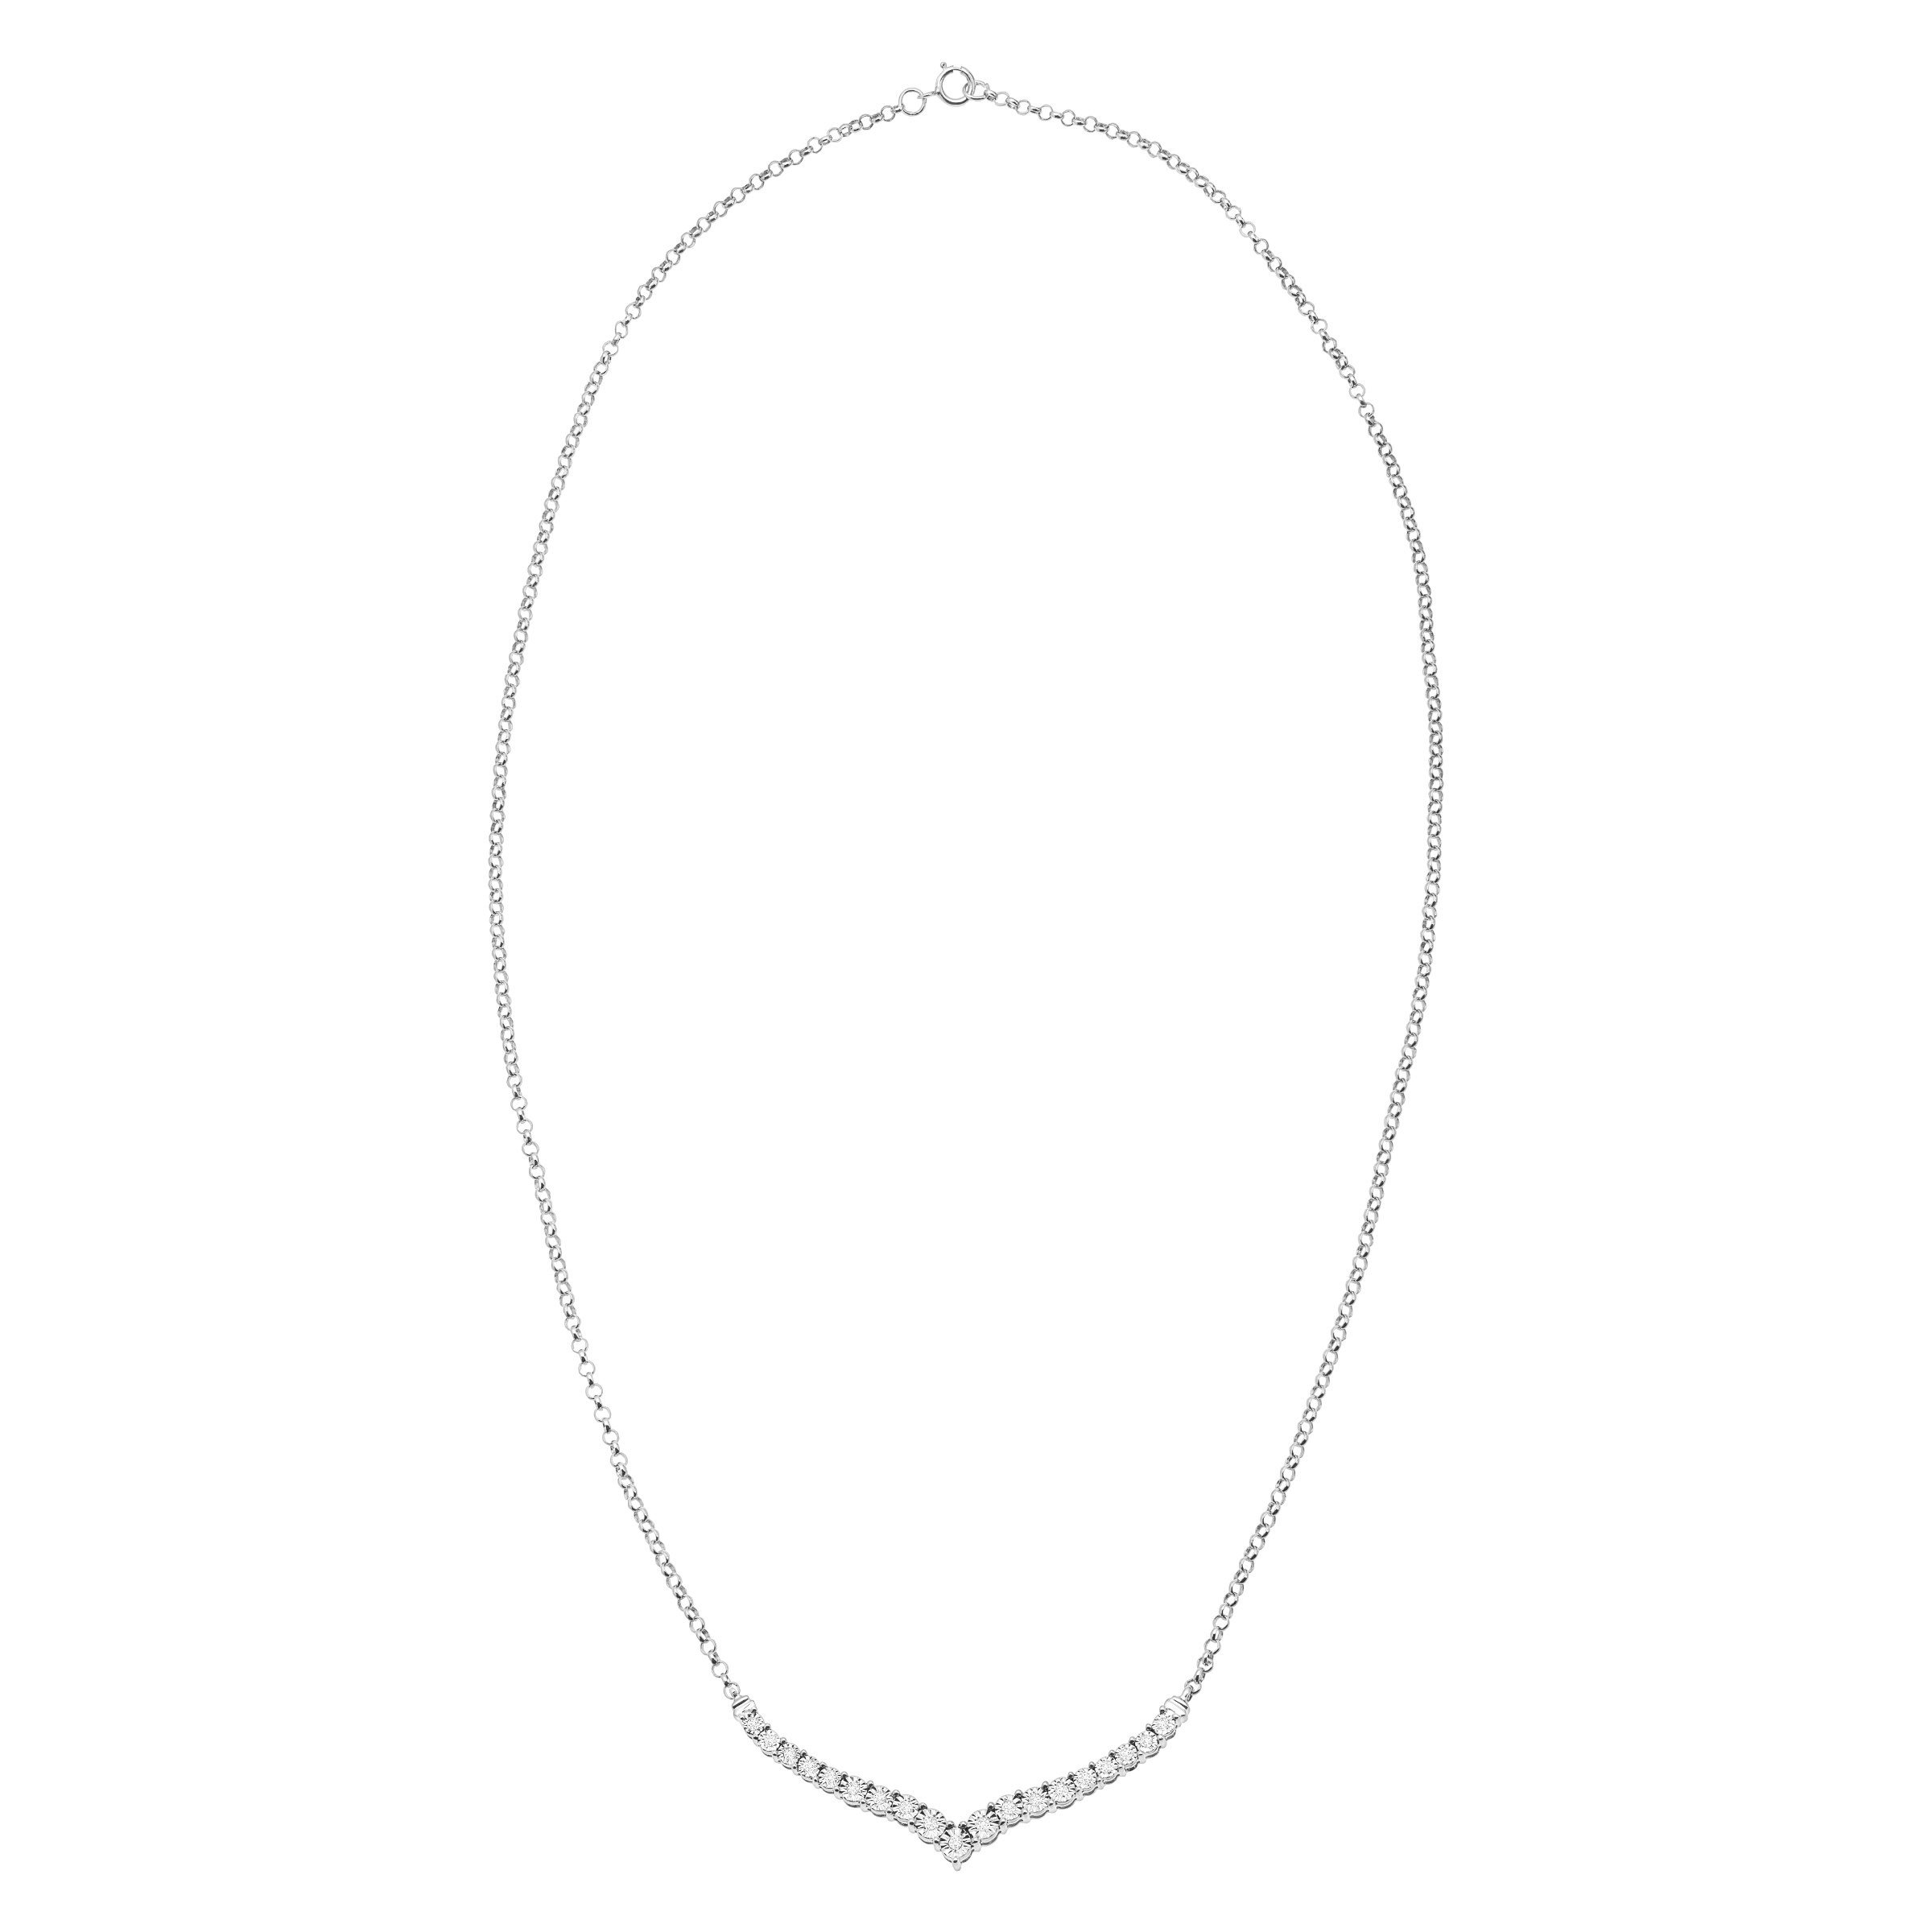 1/4 ct Diamond Chevron Necklace in Sterling Silver by Finecraft (Image #1)